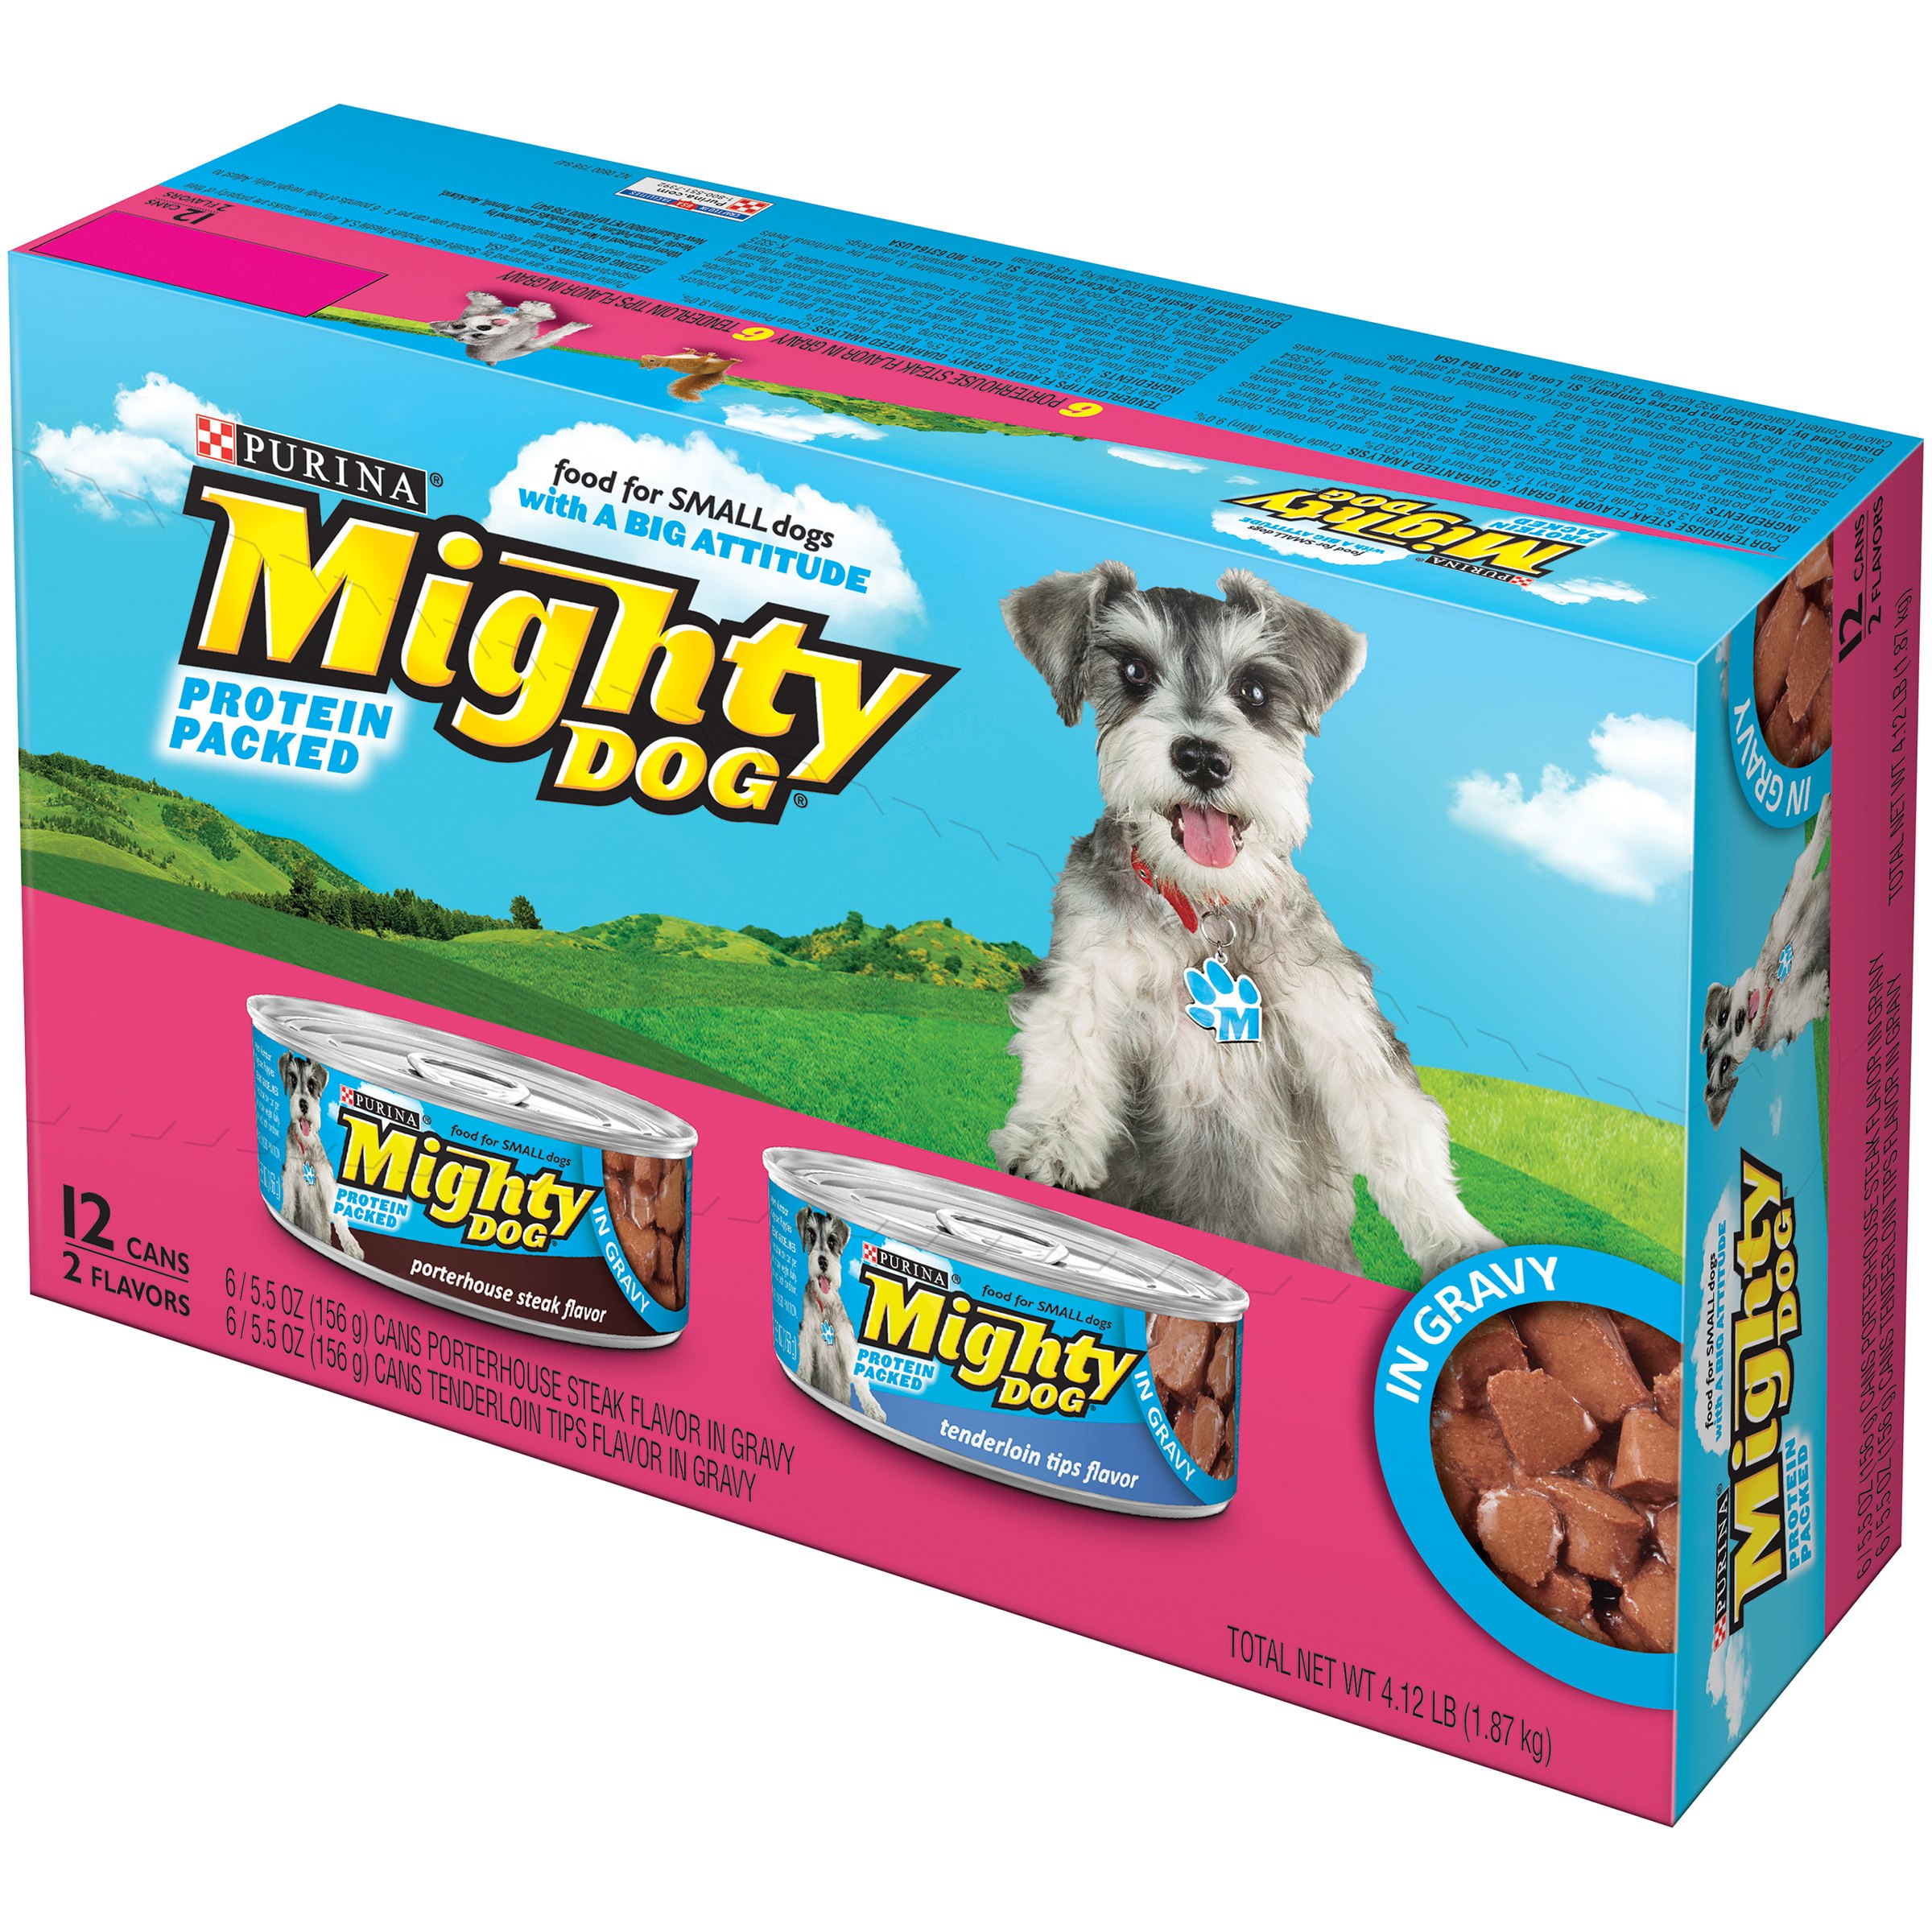 Purina Mighty Dog Dog Food in Gravy Wet Dog Food Variety Pack, 5.5 oz, Case of 12